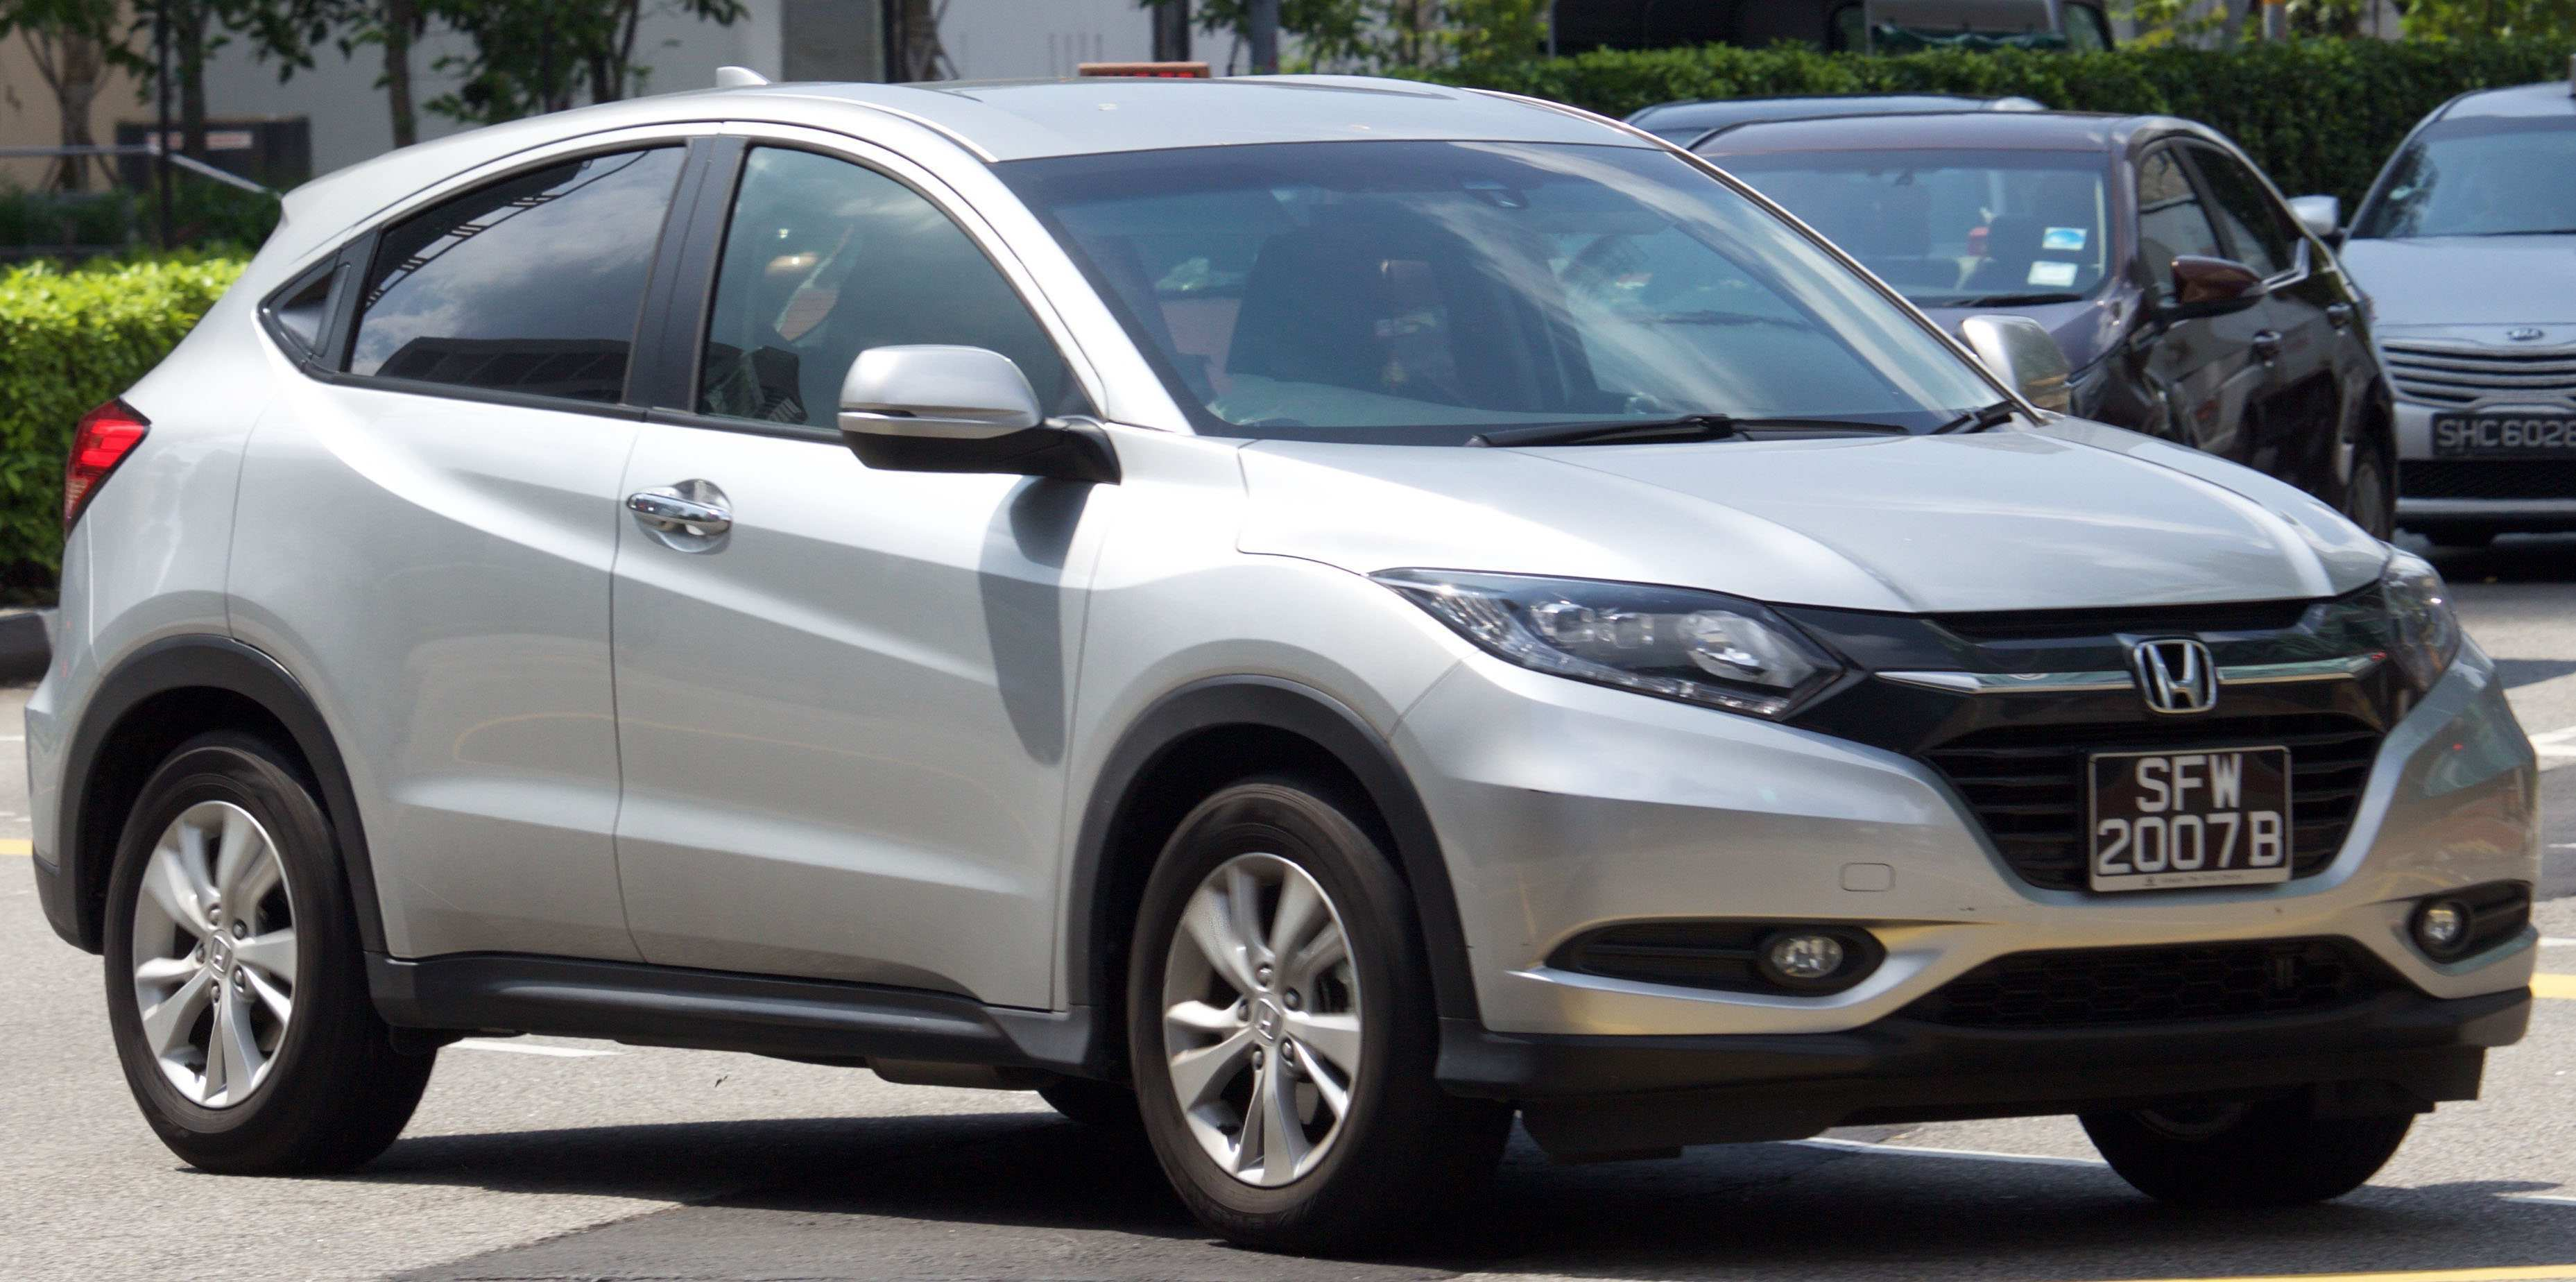 56 New Honda Vezel Hybrid 2020 Spesification